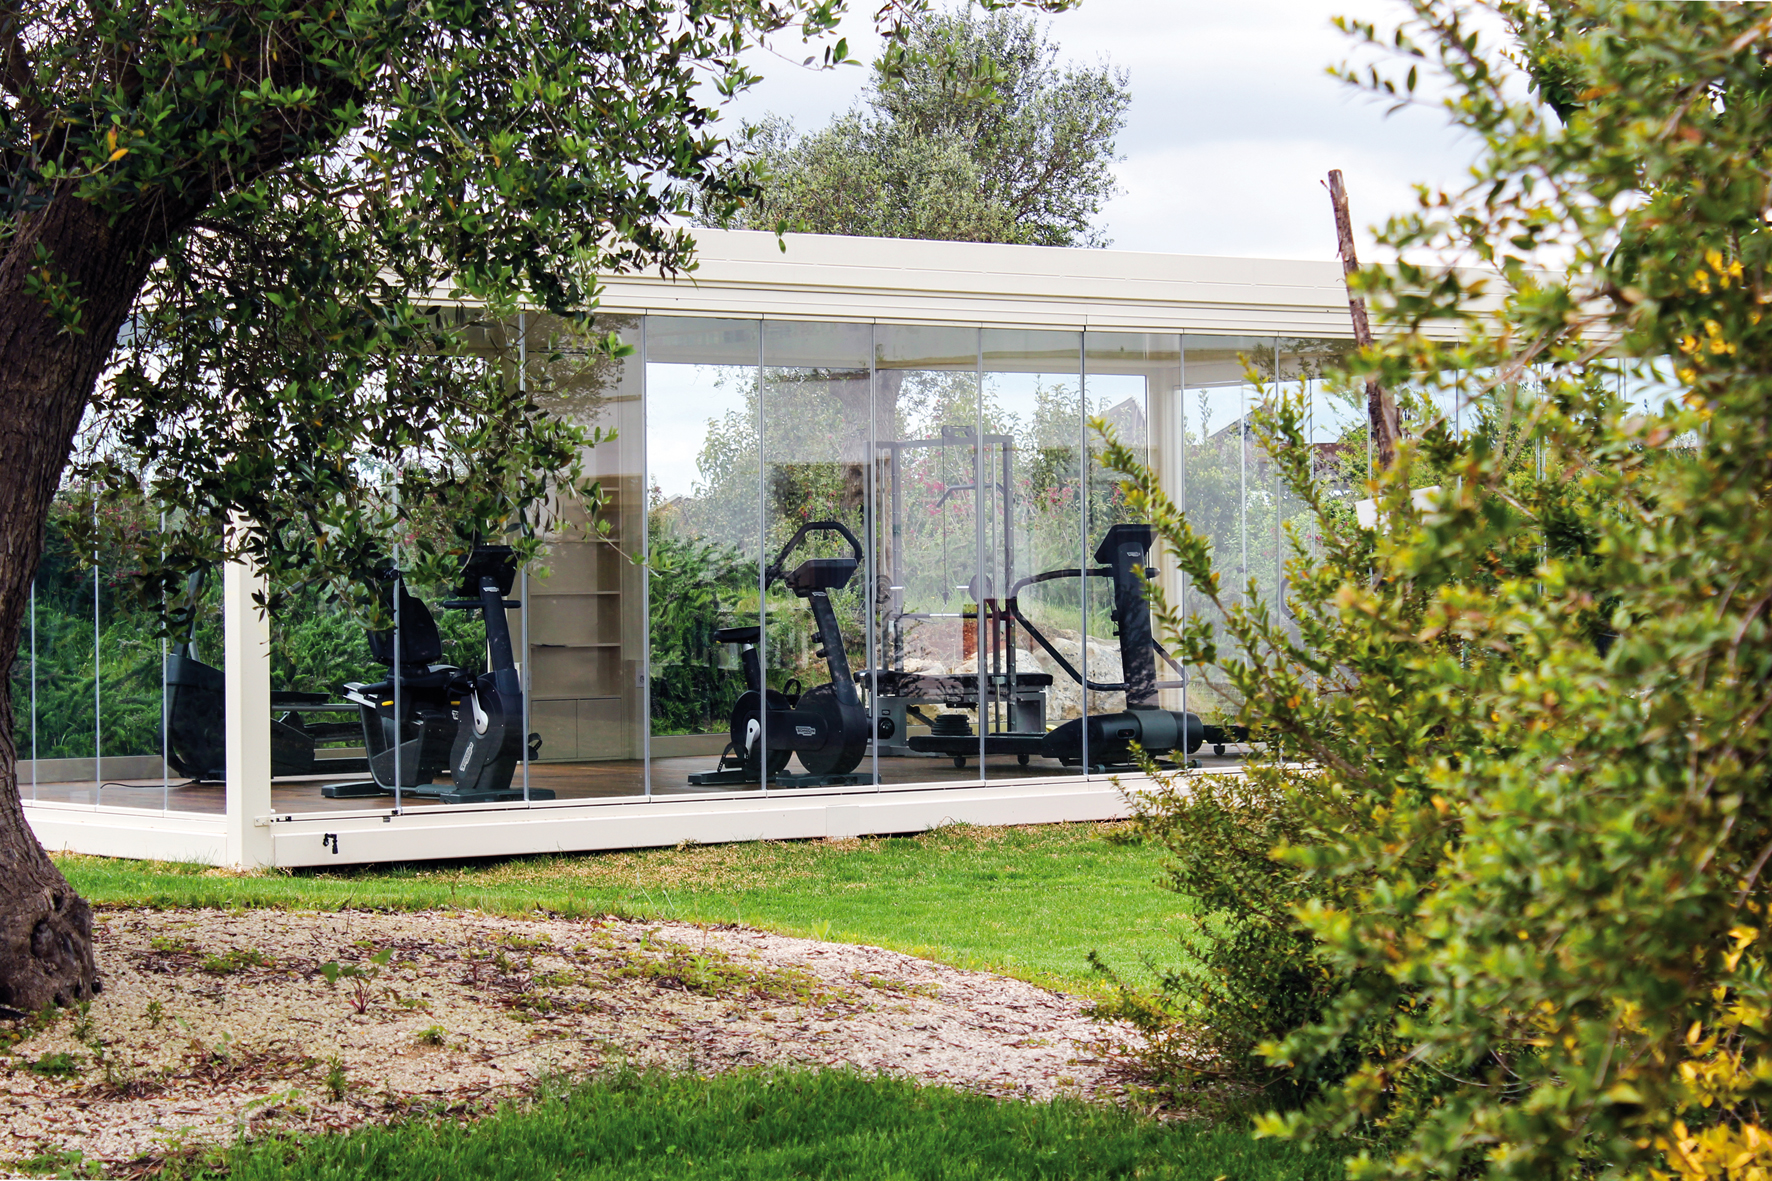 pergole-autoportanti-qbox-fisso-palestra-outdoor-resort